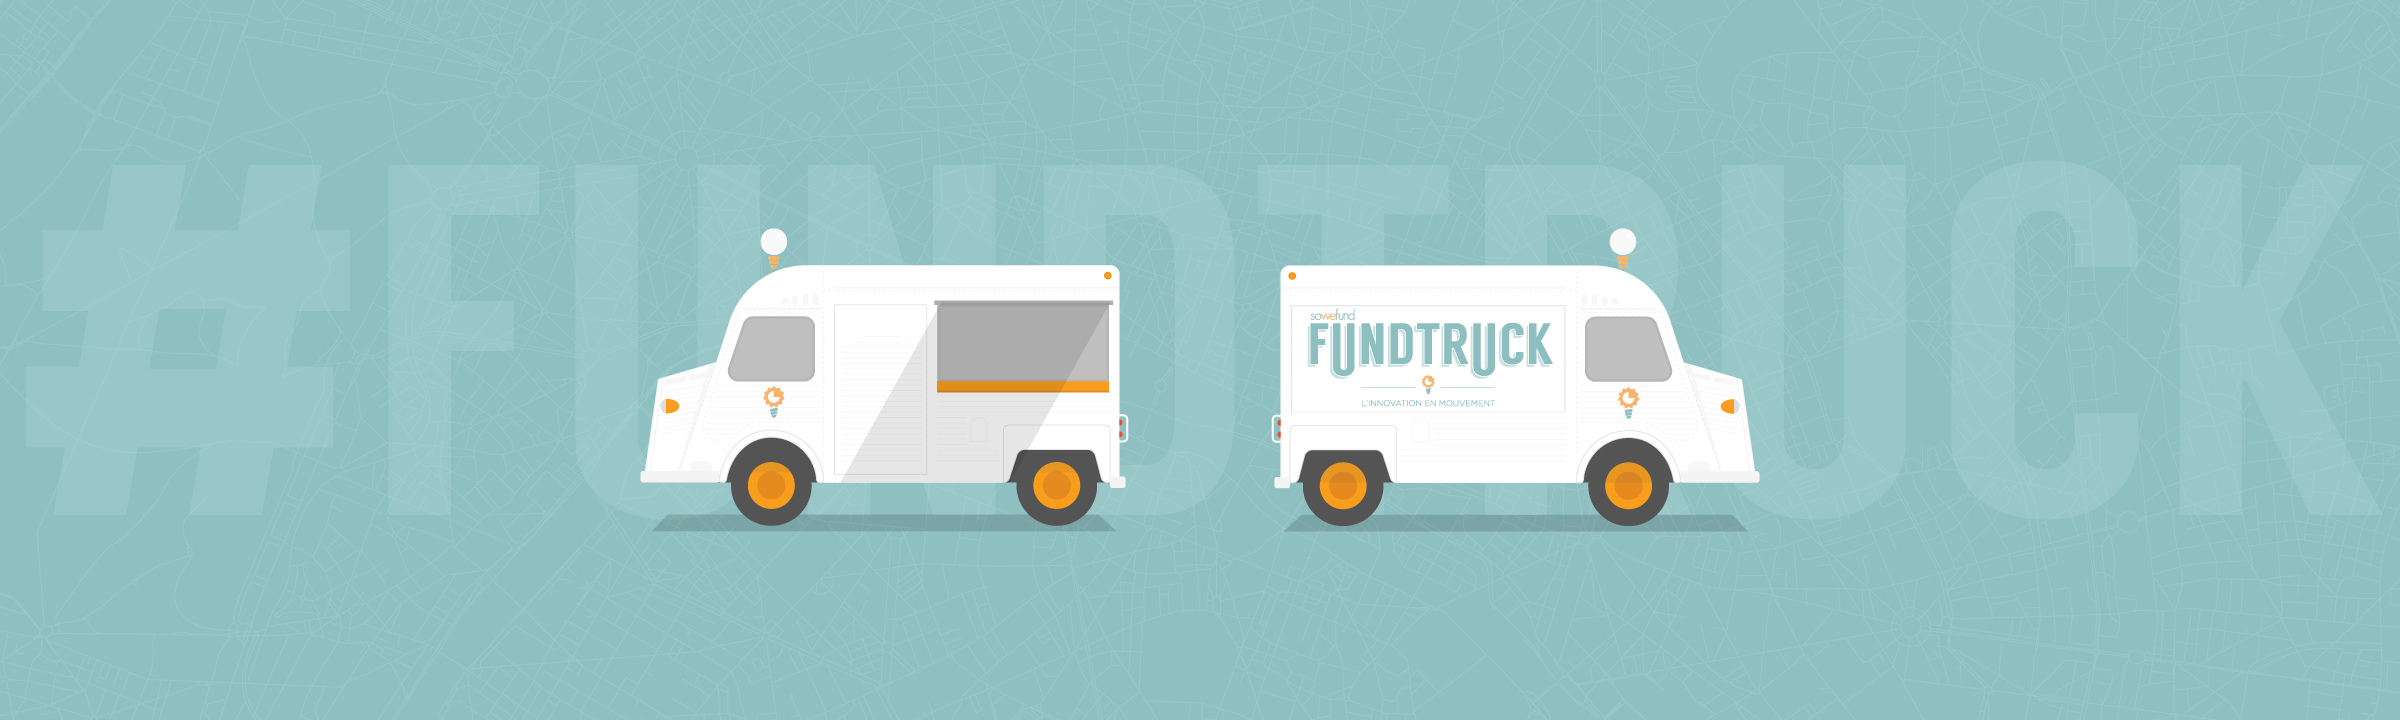 #fundtruck